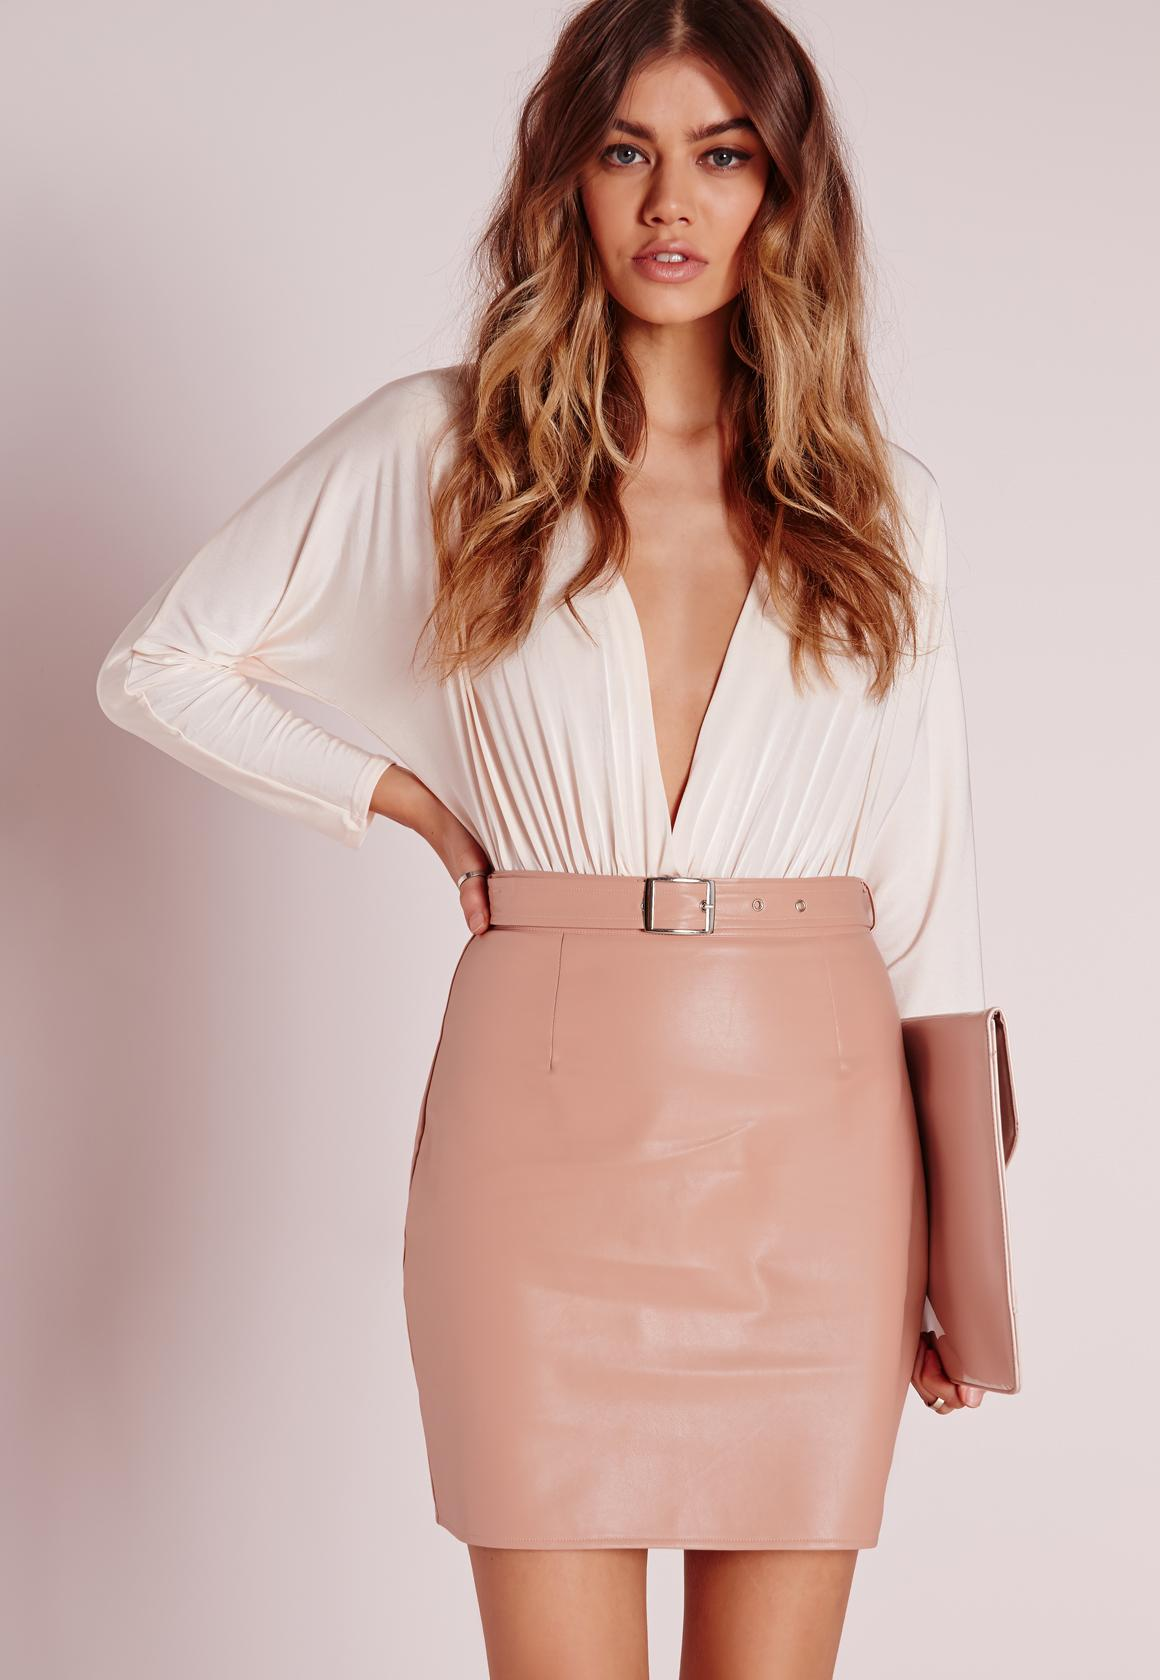 Buckle Detail Faux Leather Mini Skirt Nude Pink | Missguided